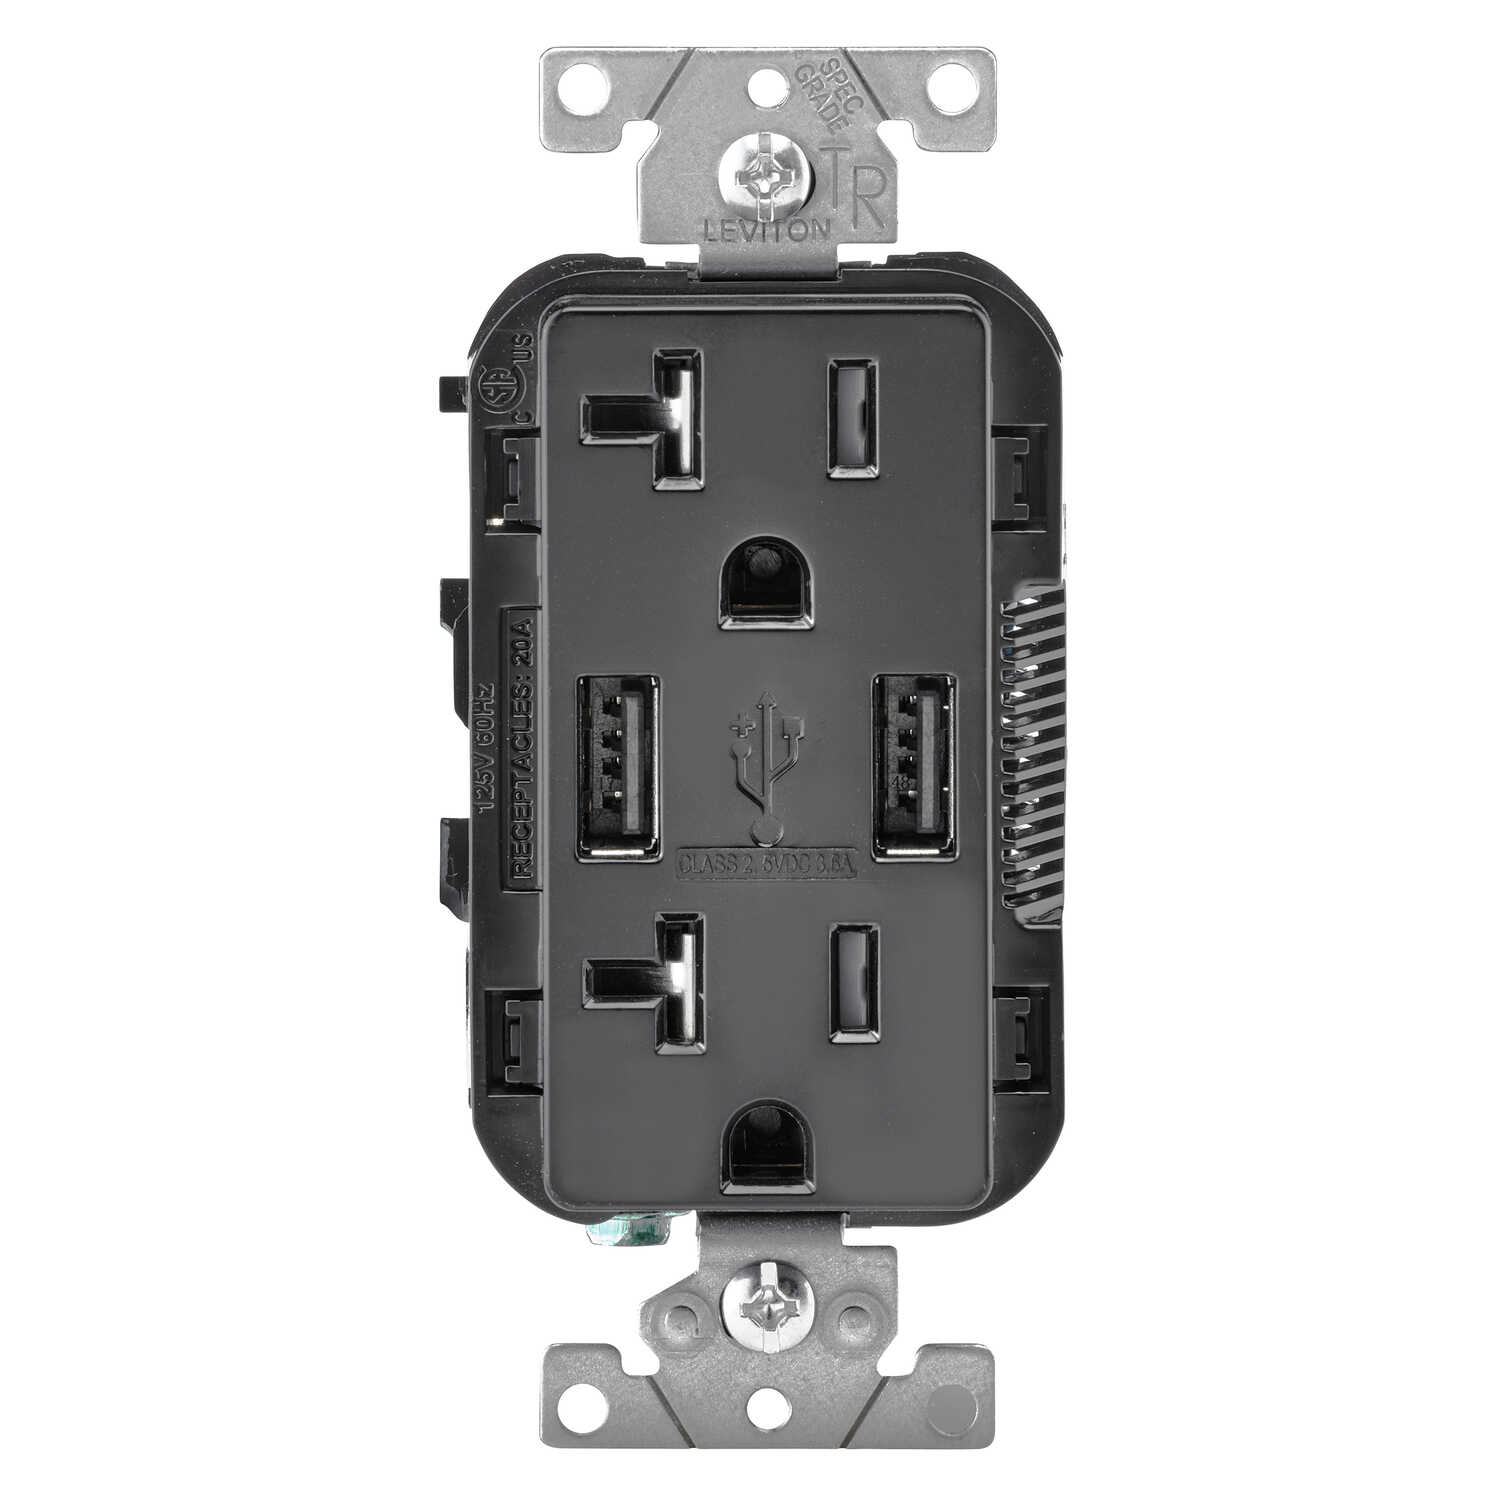 Leviton  Decora  20 amps 125 volt Black  Outlet and USB Charger  5-20R  1 pk